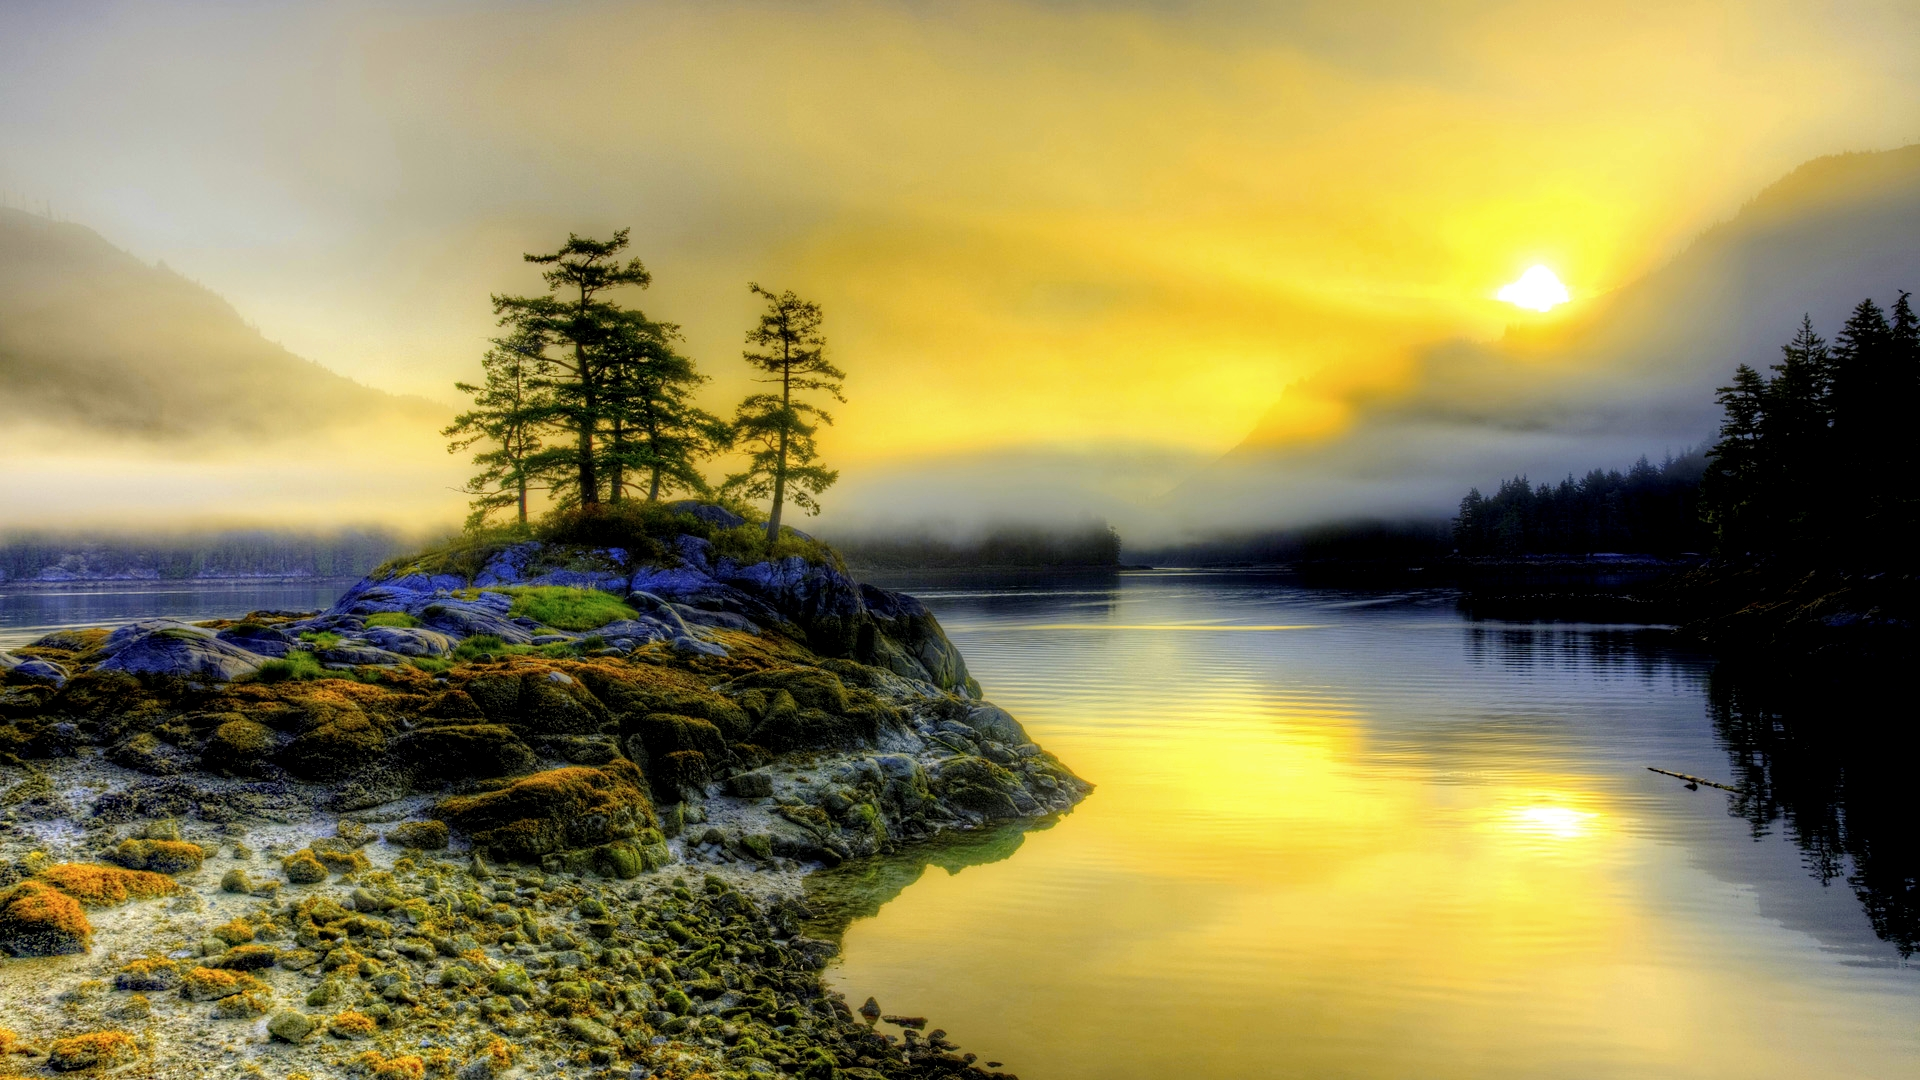 Morning Wallpaper 7426 1920 x 1200 - WallpaperLayer com